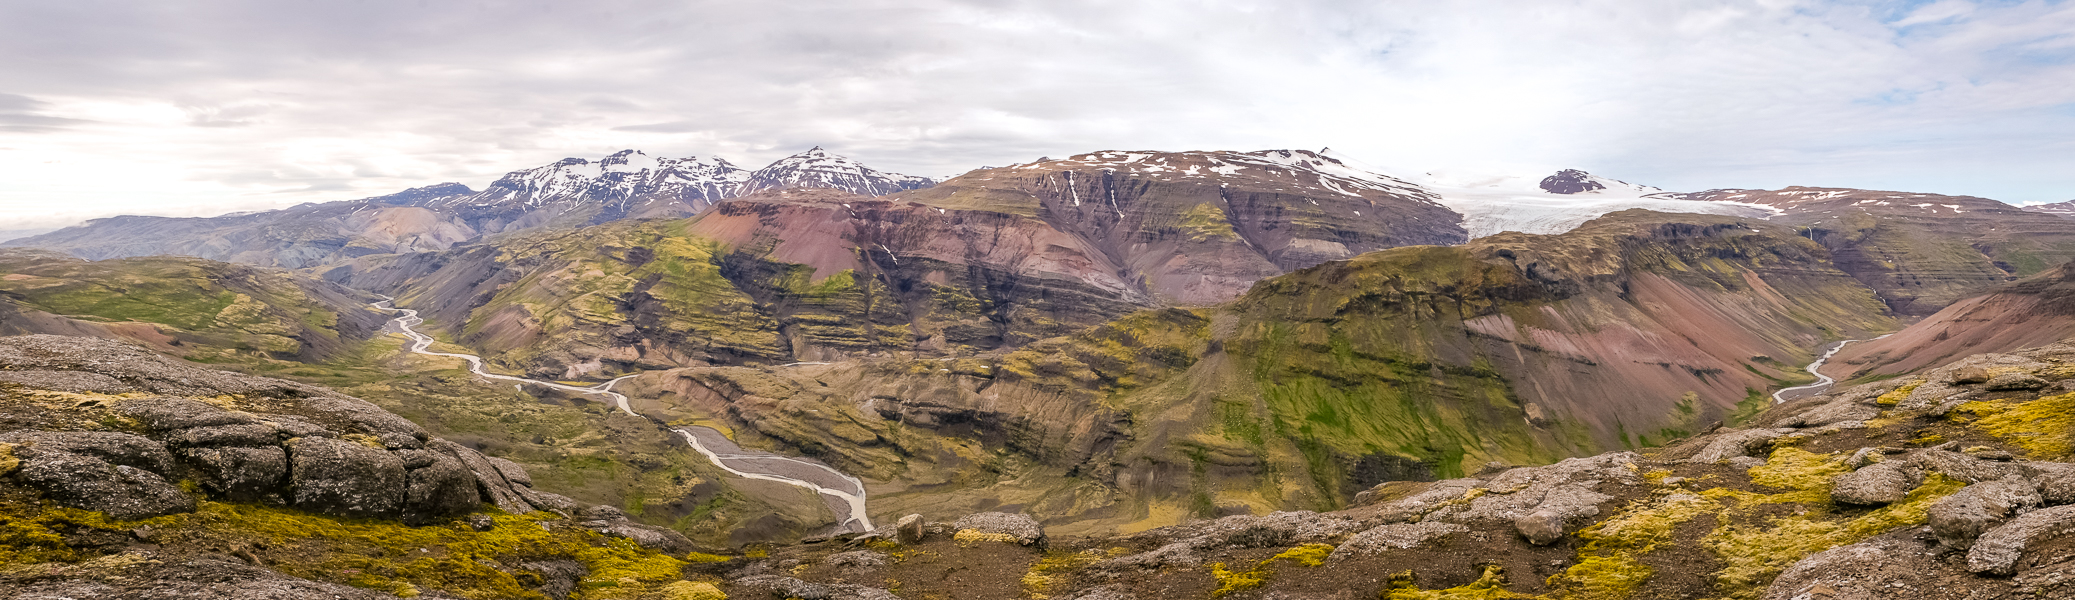 Panoramic view valley below Tröllakrókar - Day 3 of In the Shadow of Vatnajökull trek - East Iceland